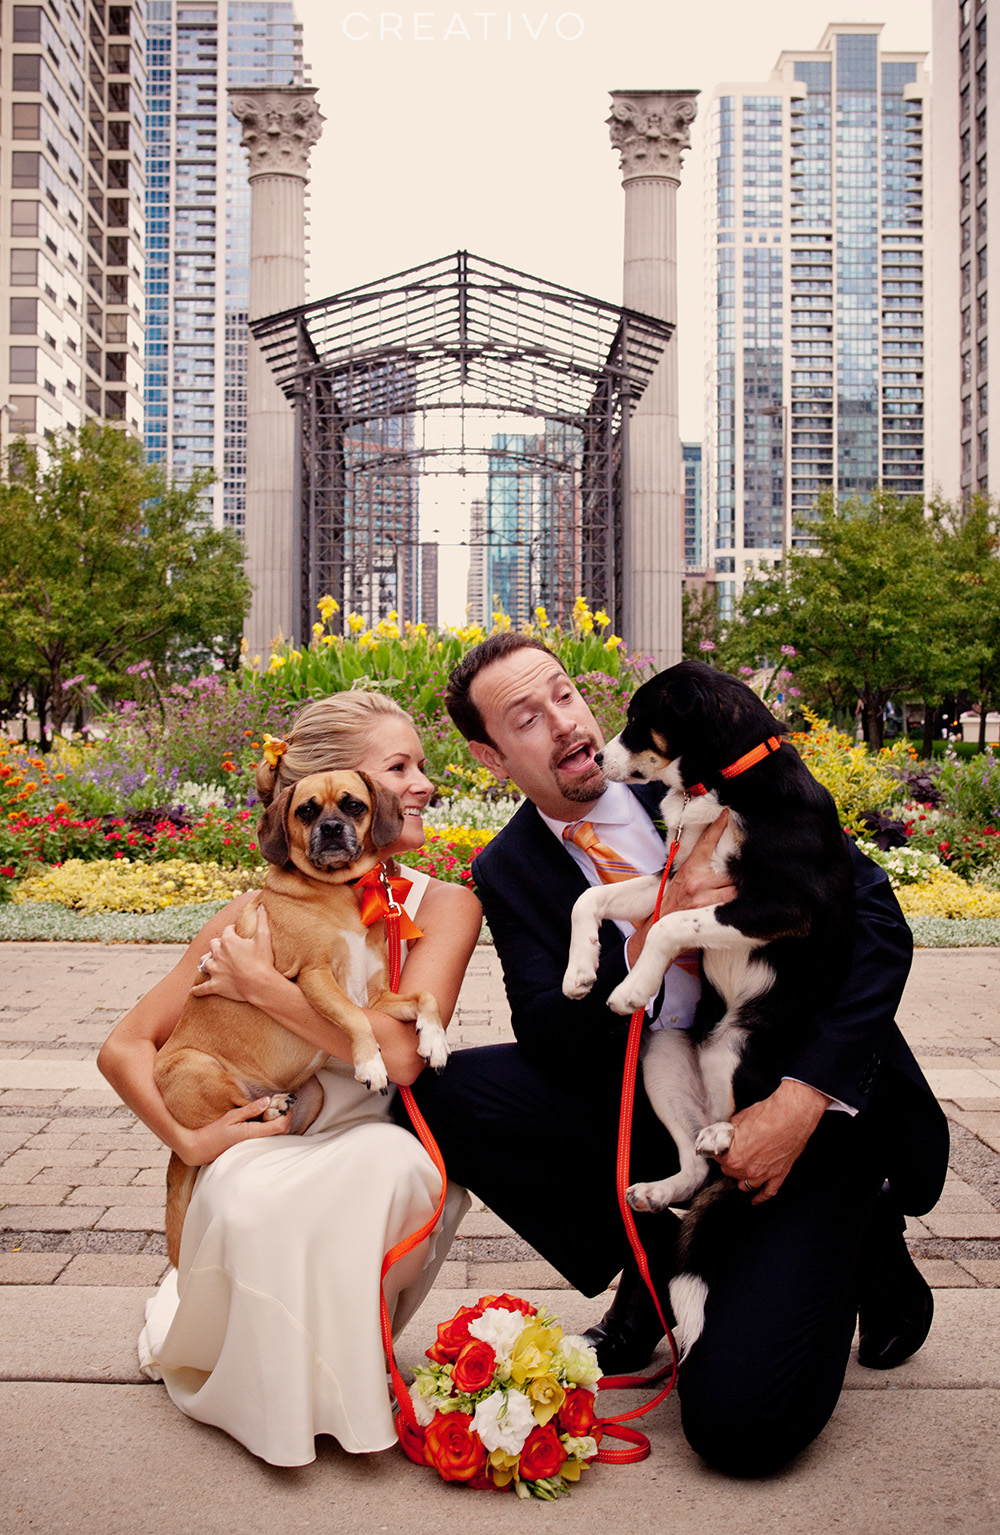 9. Chicago garden elopement with your dog